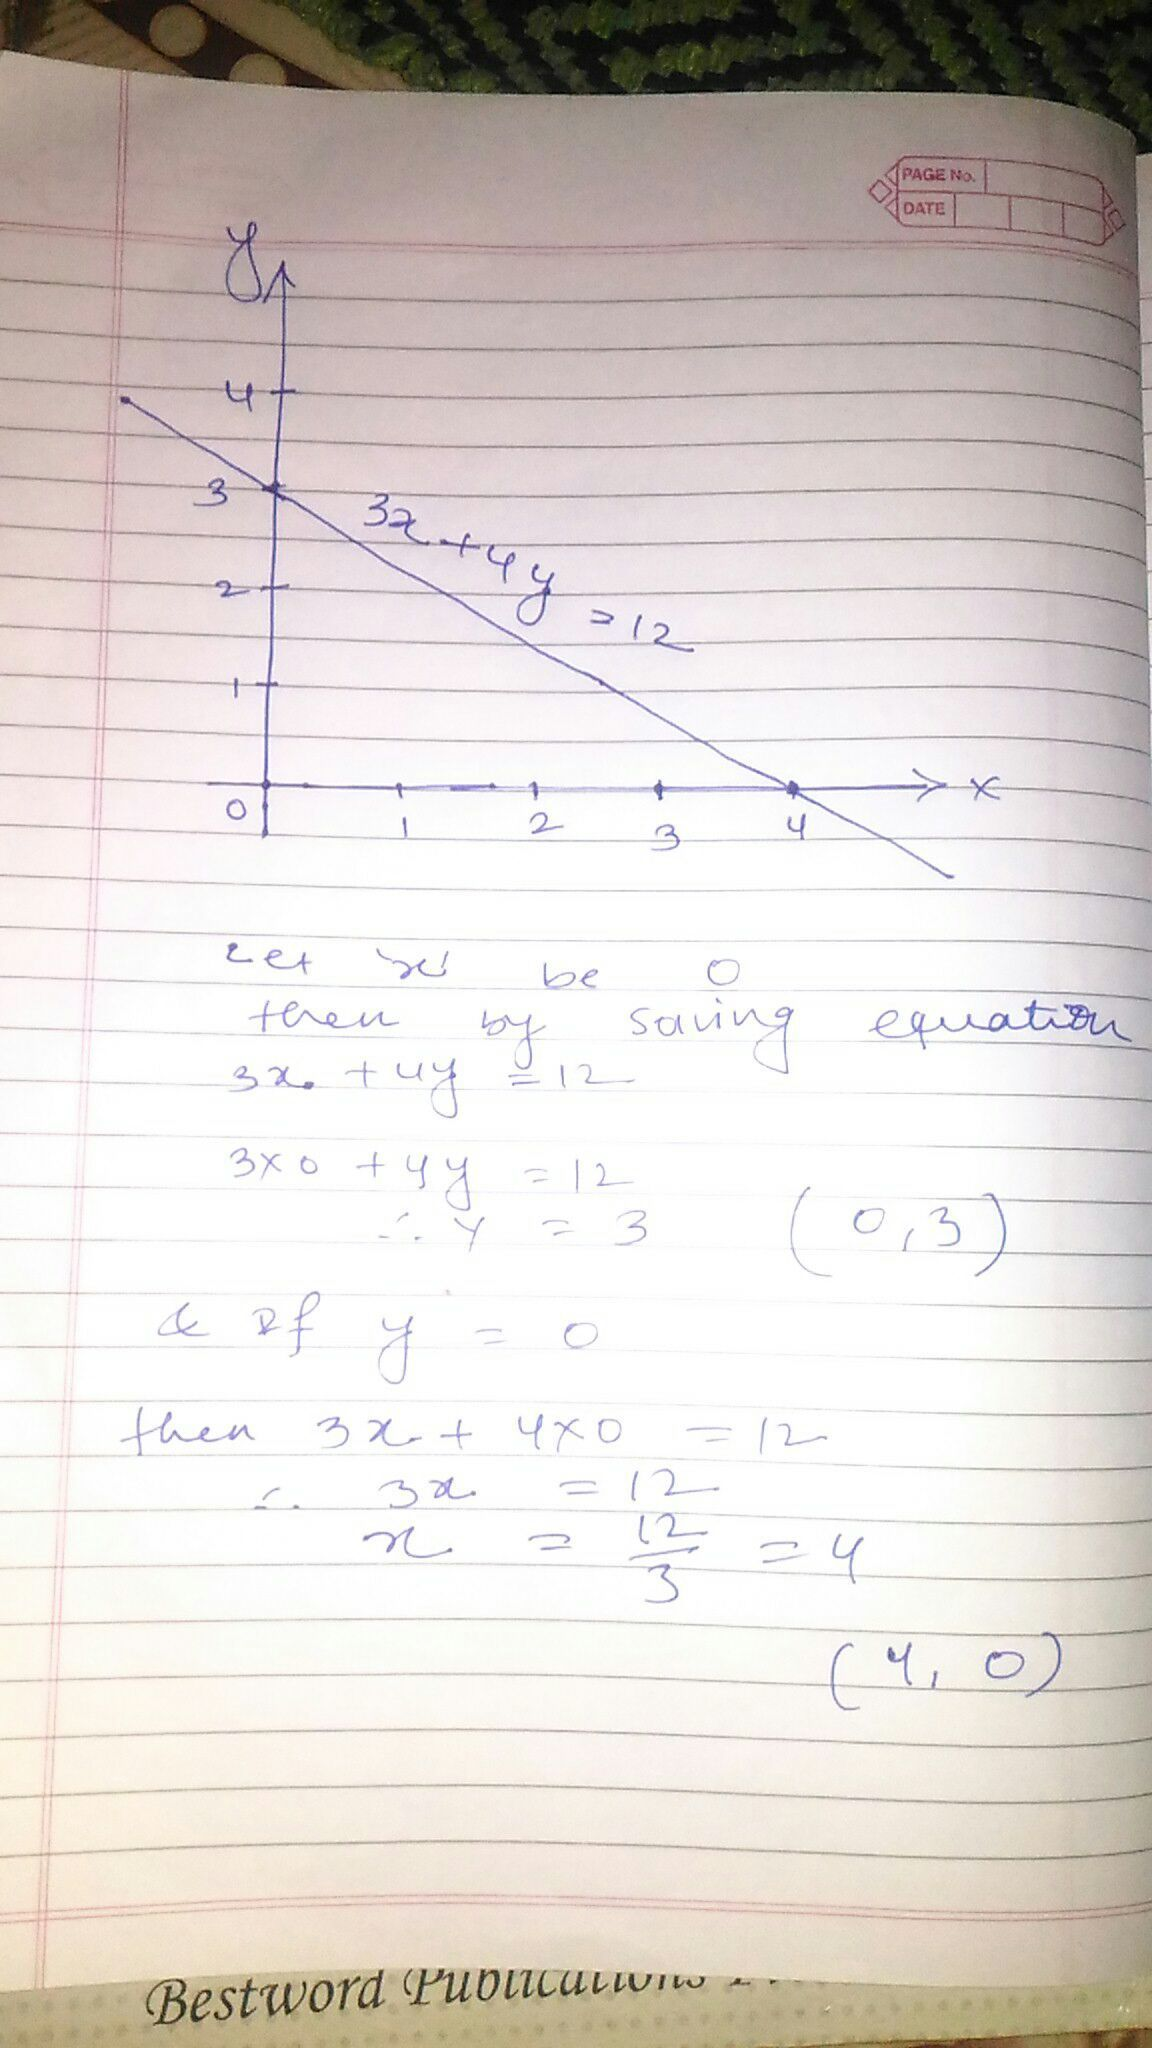 Find The Points Where The Graph Of The Equation 3x 4y